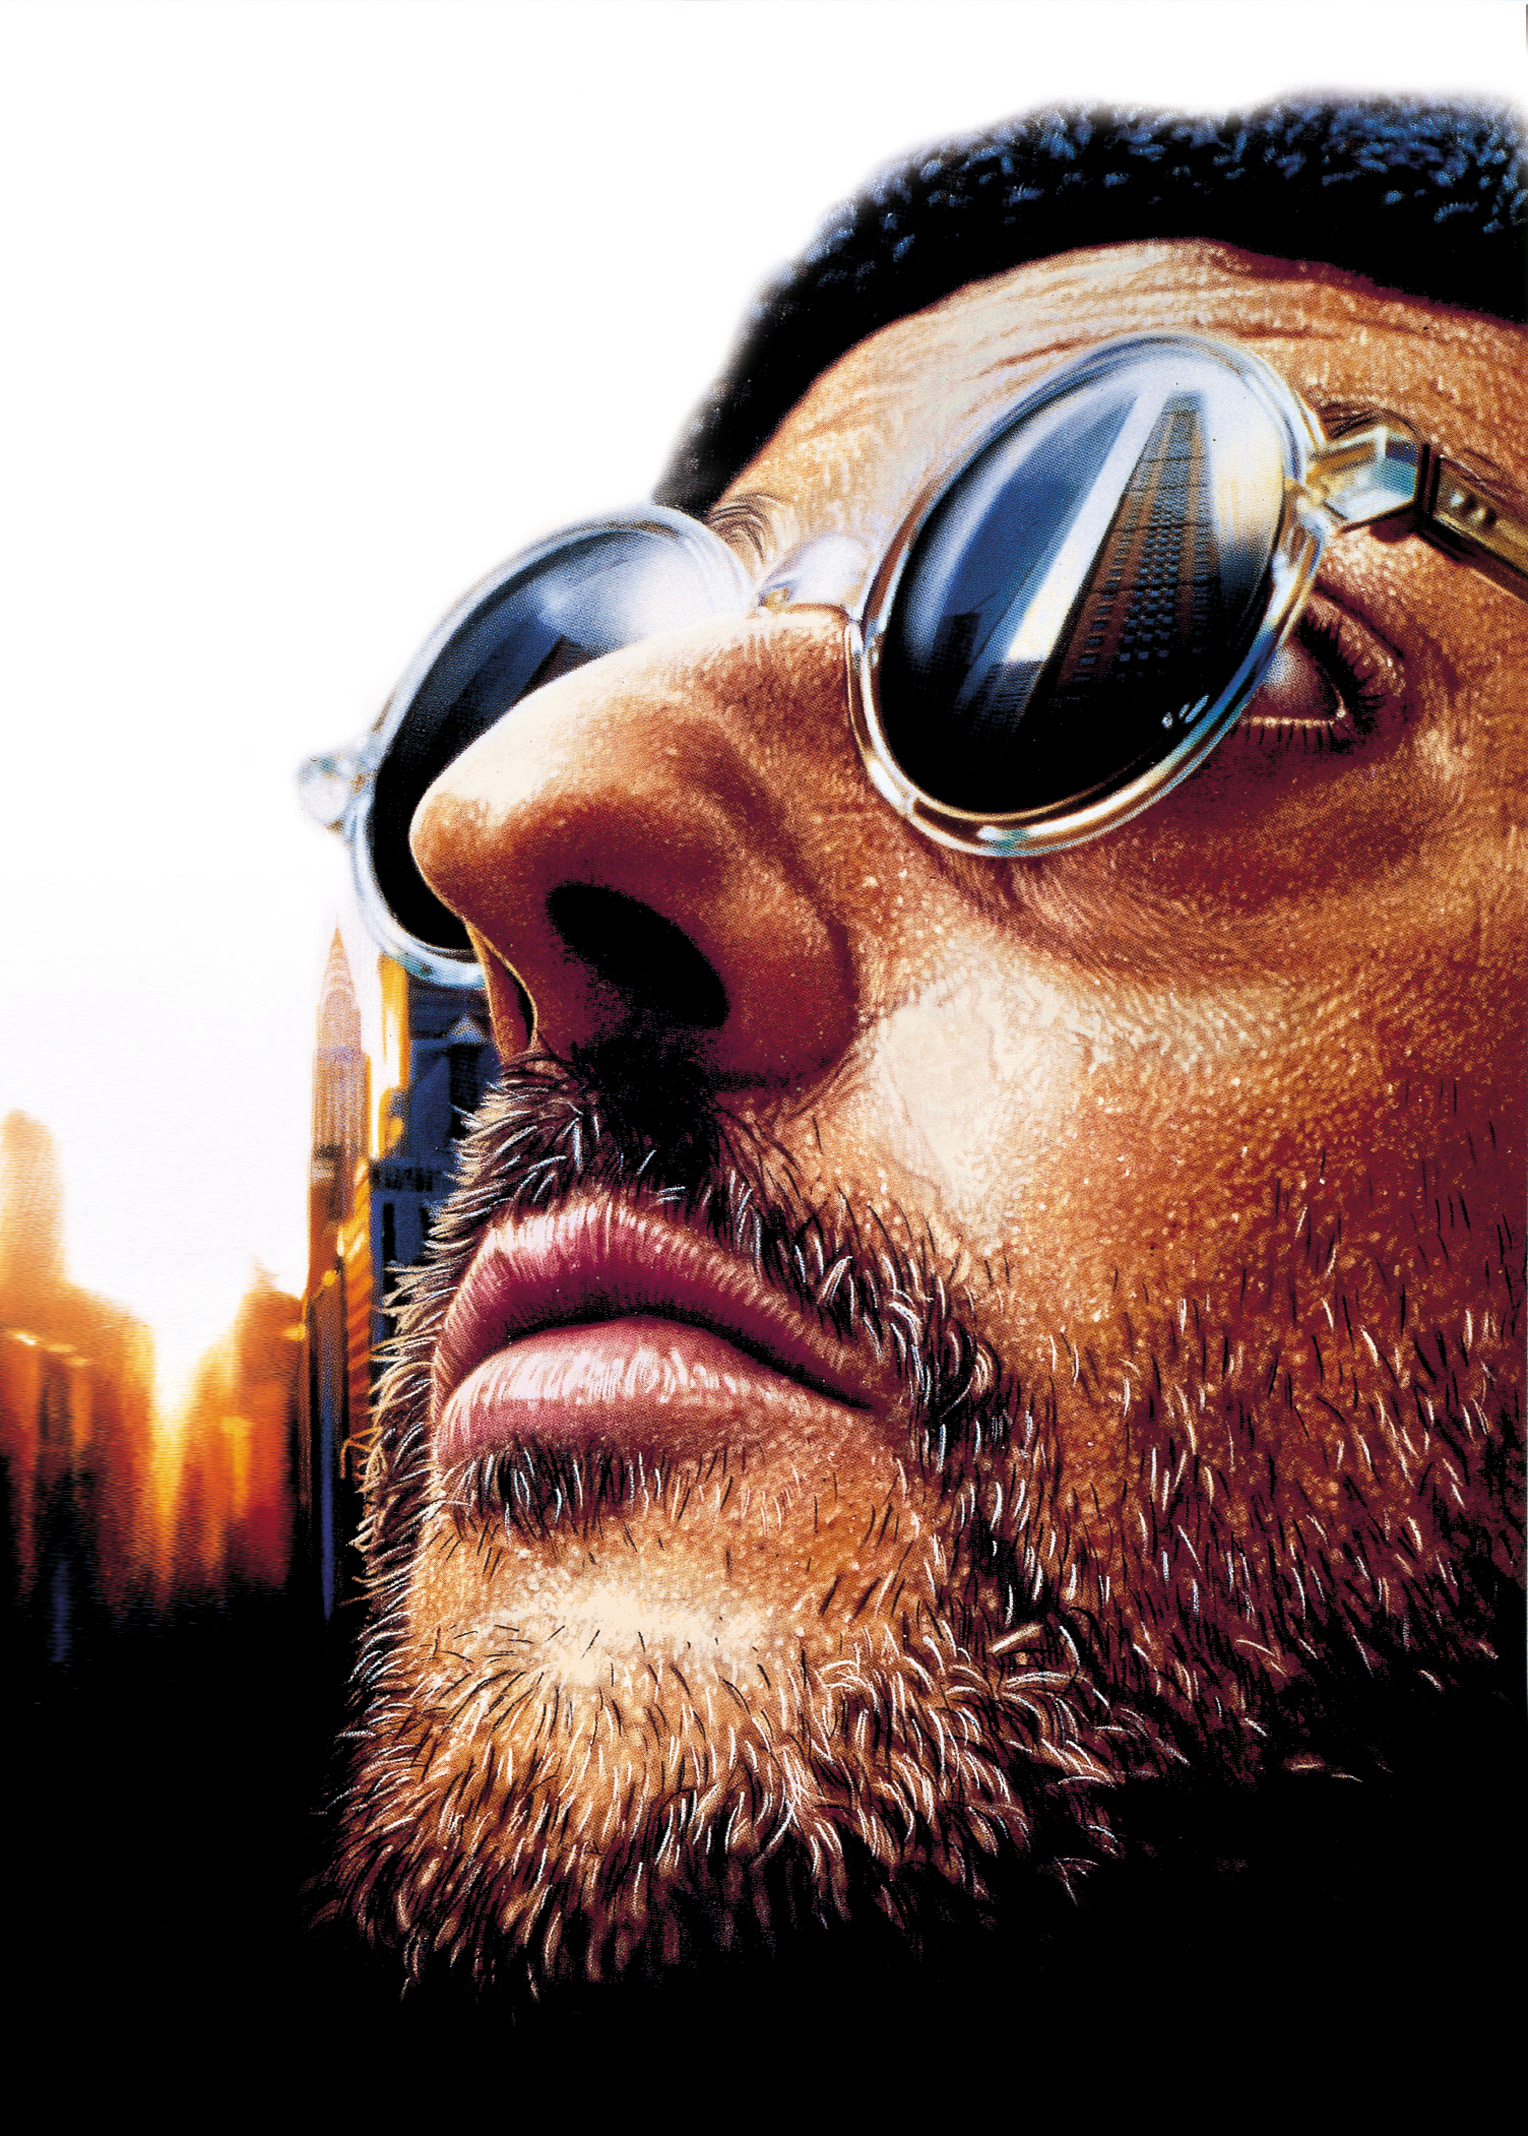 The professional jean reno HD Wallpaper